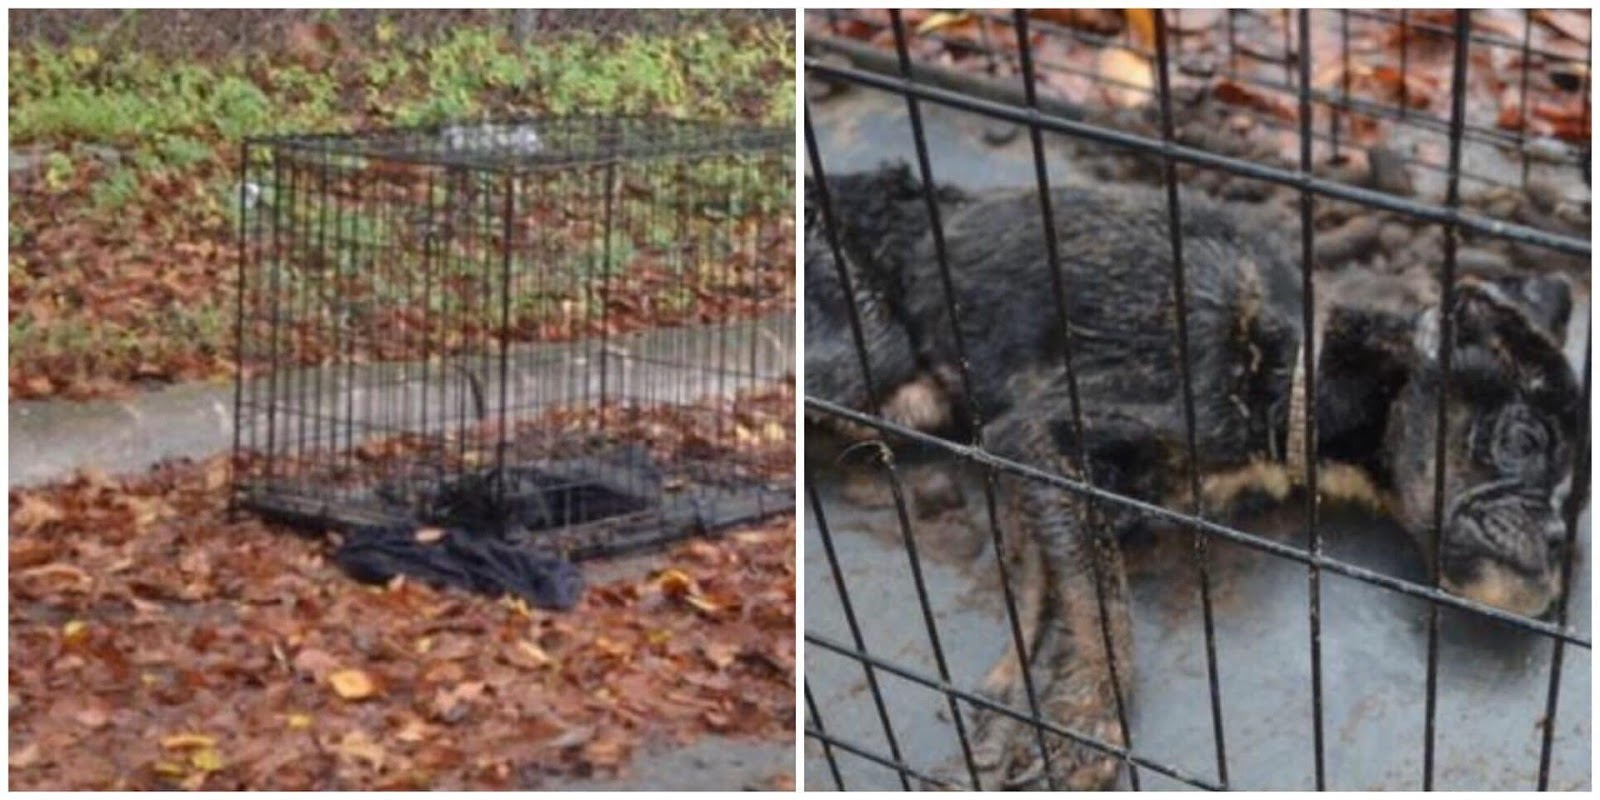 Police Get Call About Dead Dog Left In Crate  Cop Inspects